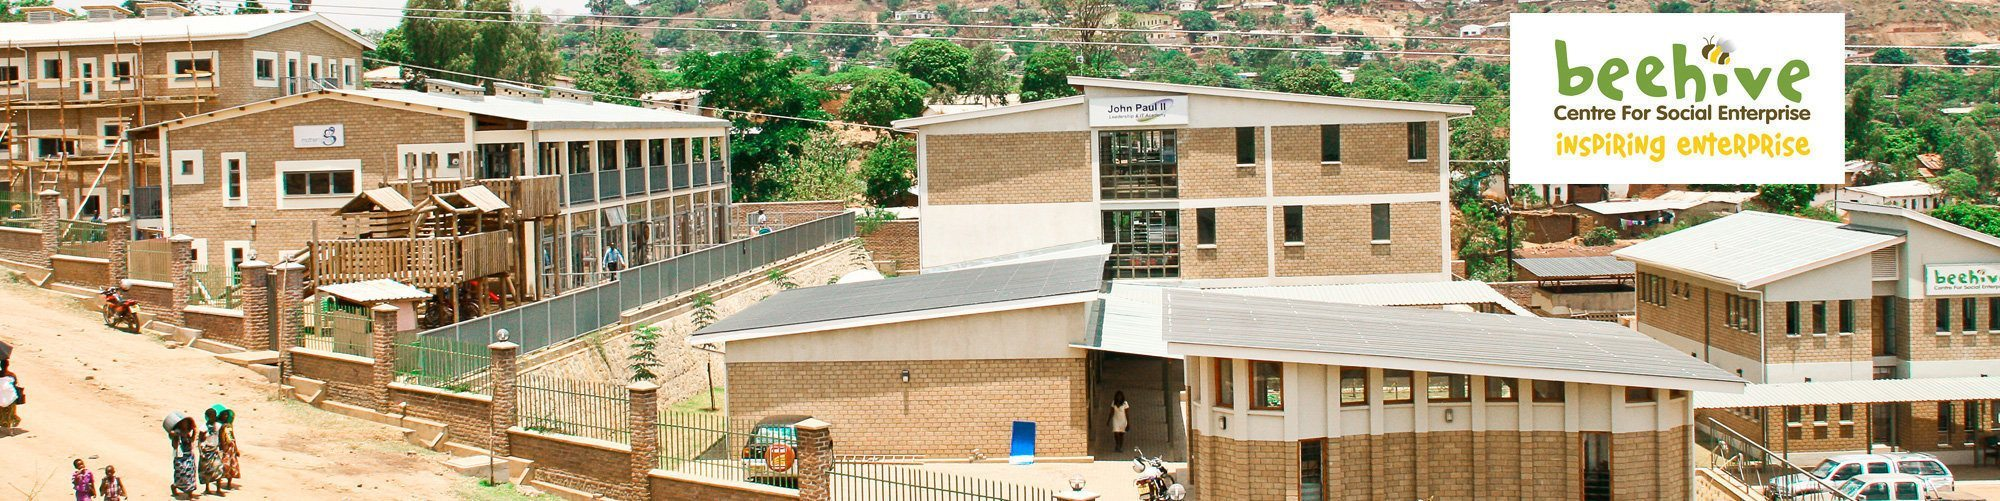 Beehive Campus, Malawi